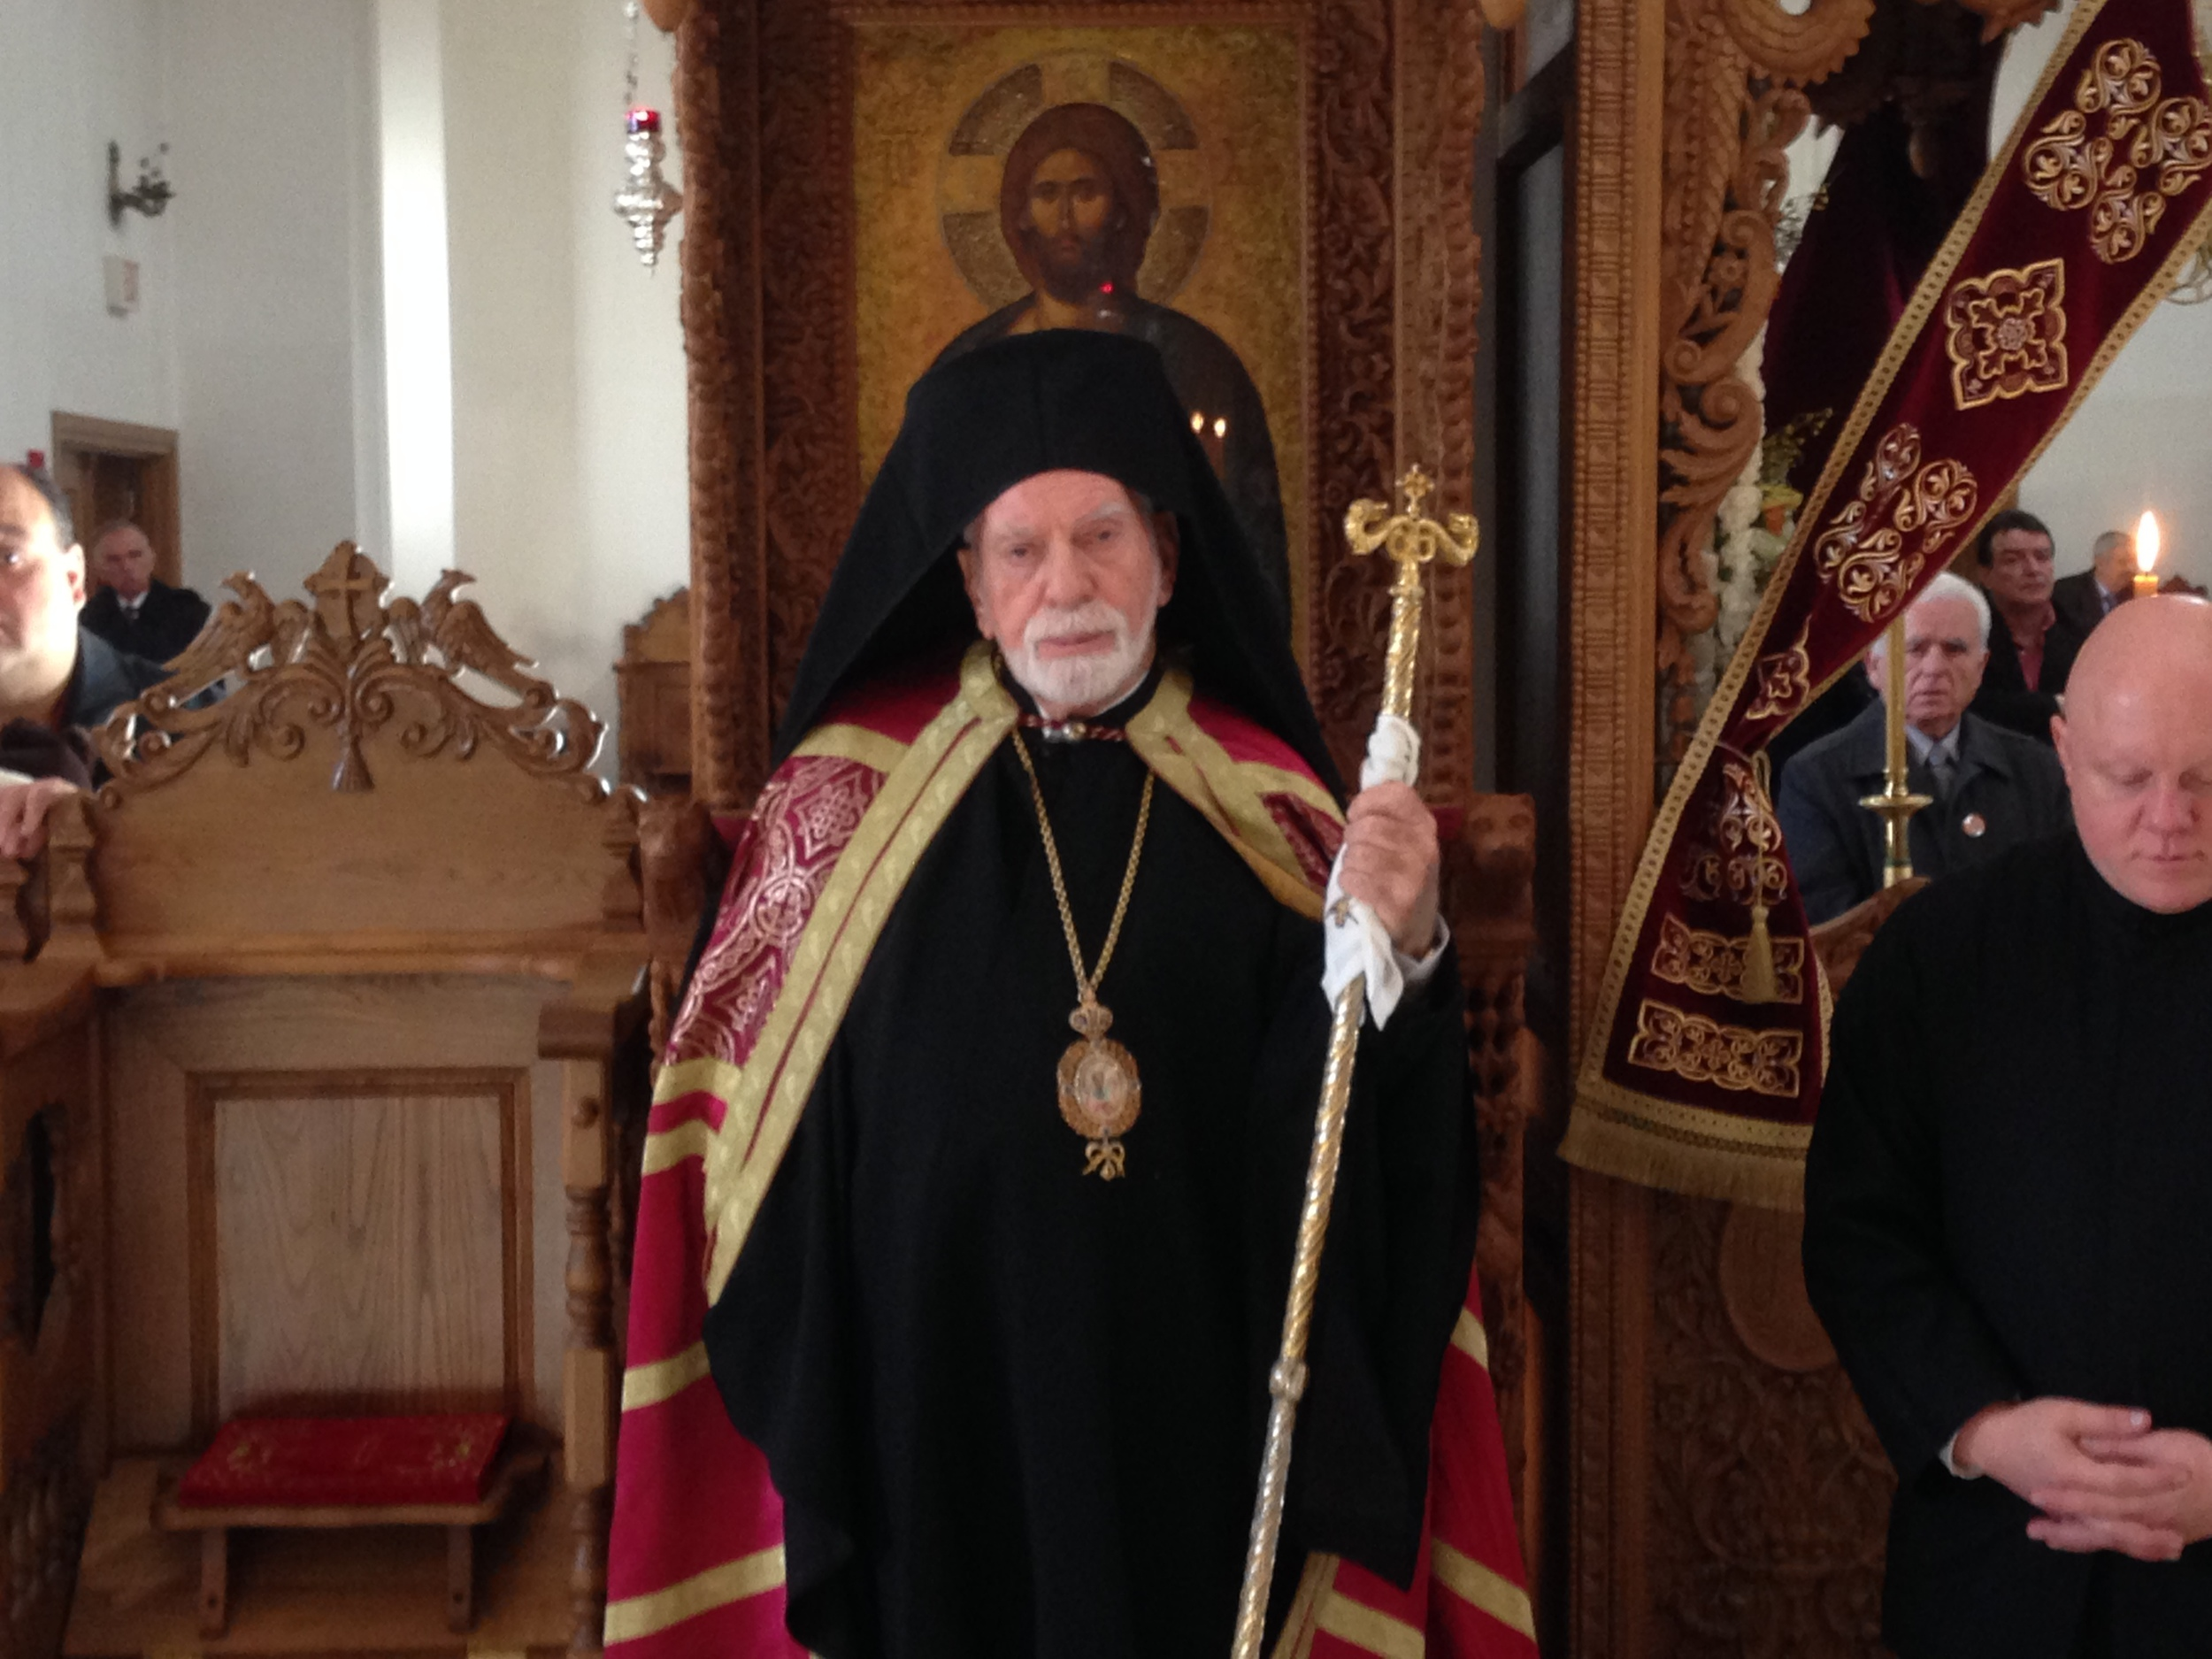 His Eminence on the Throne 11-13-13.JPG